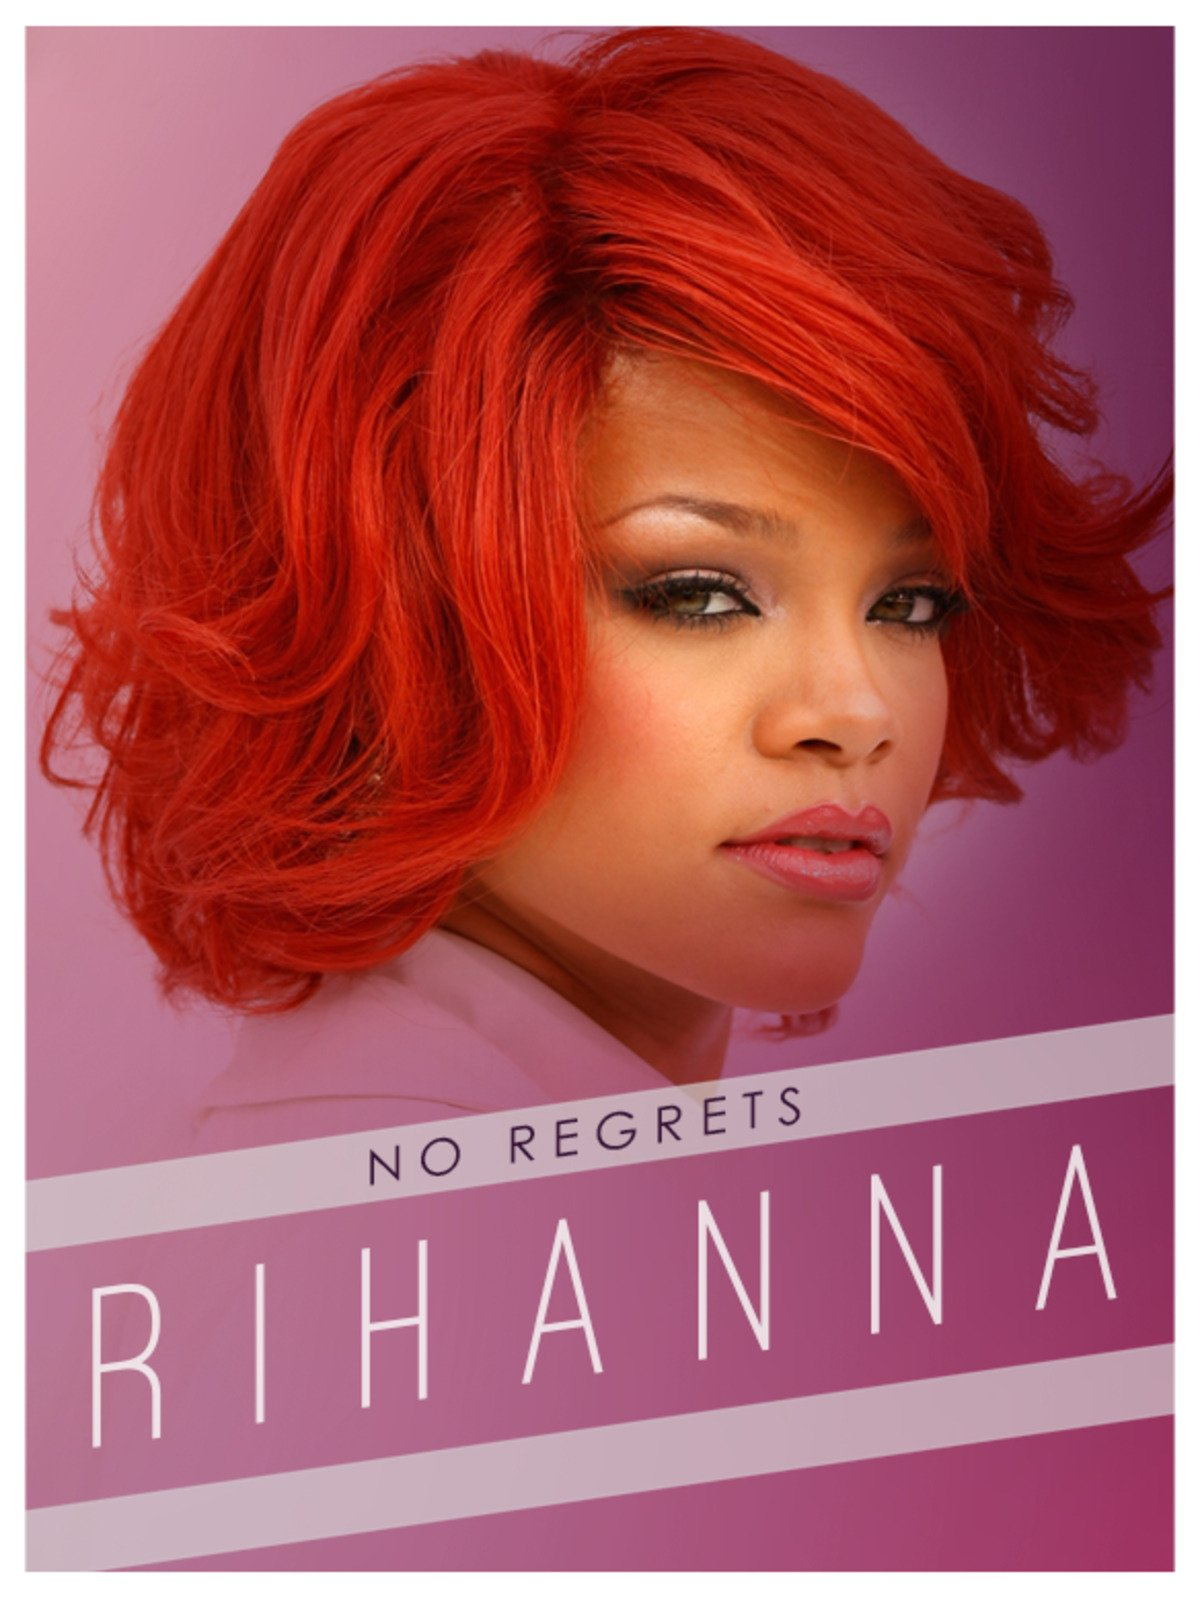 Rihanna: No Regrets on Amazon Prime Instant Video UK